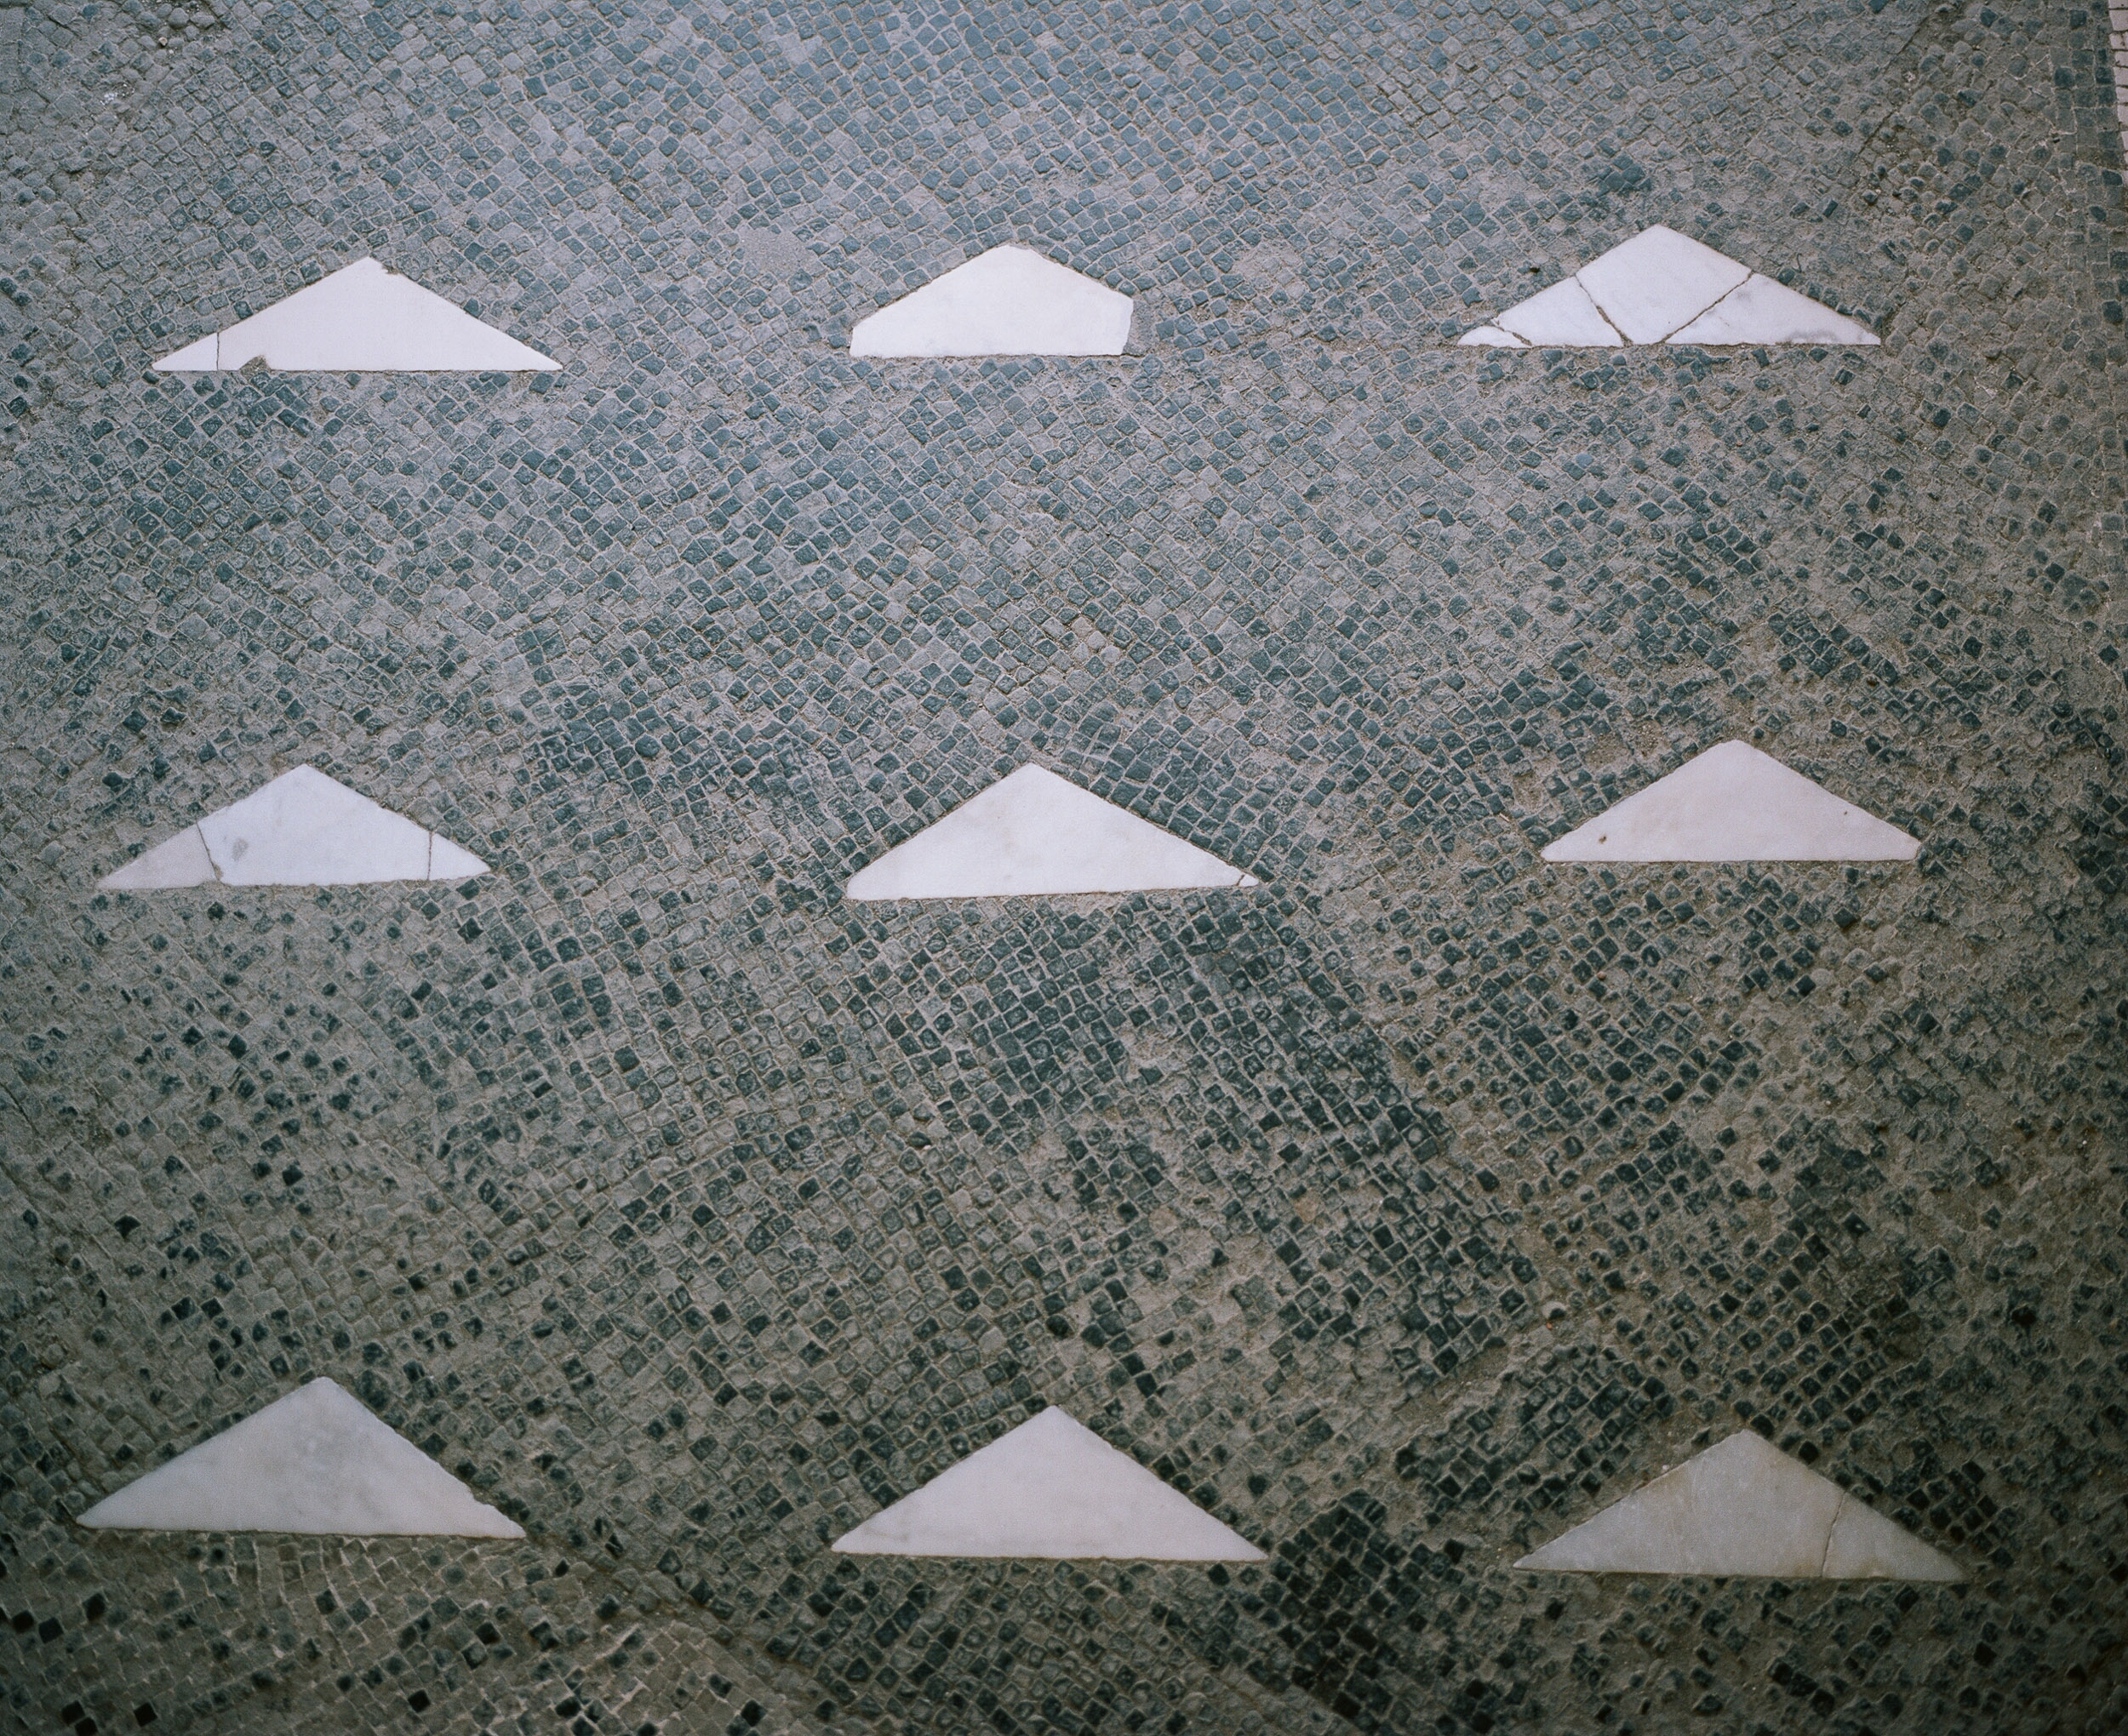 Triangle tile work in Europe